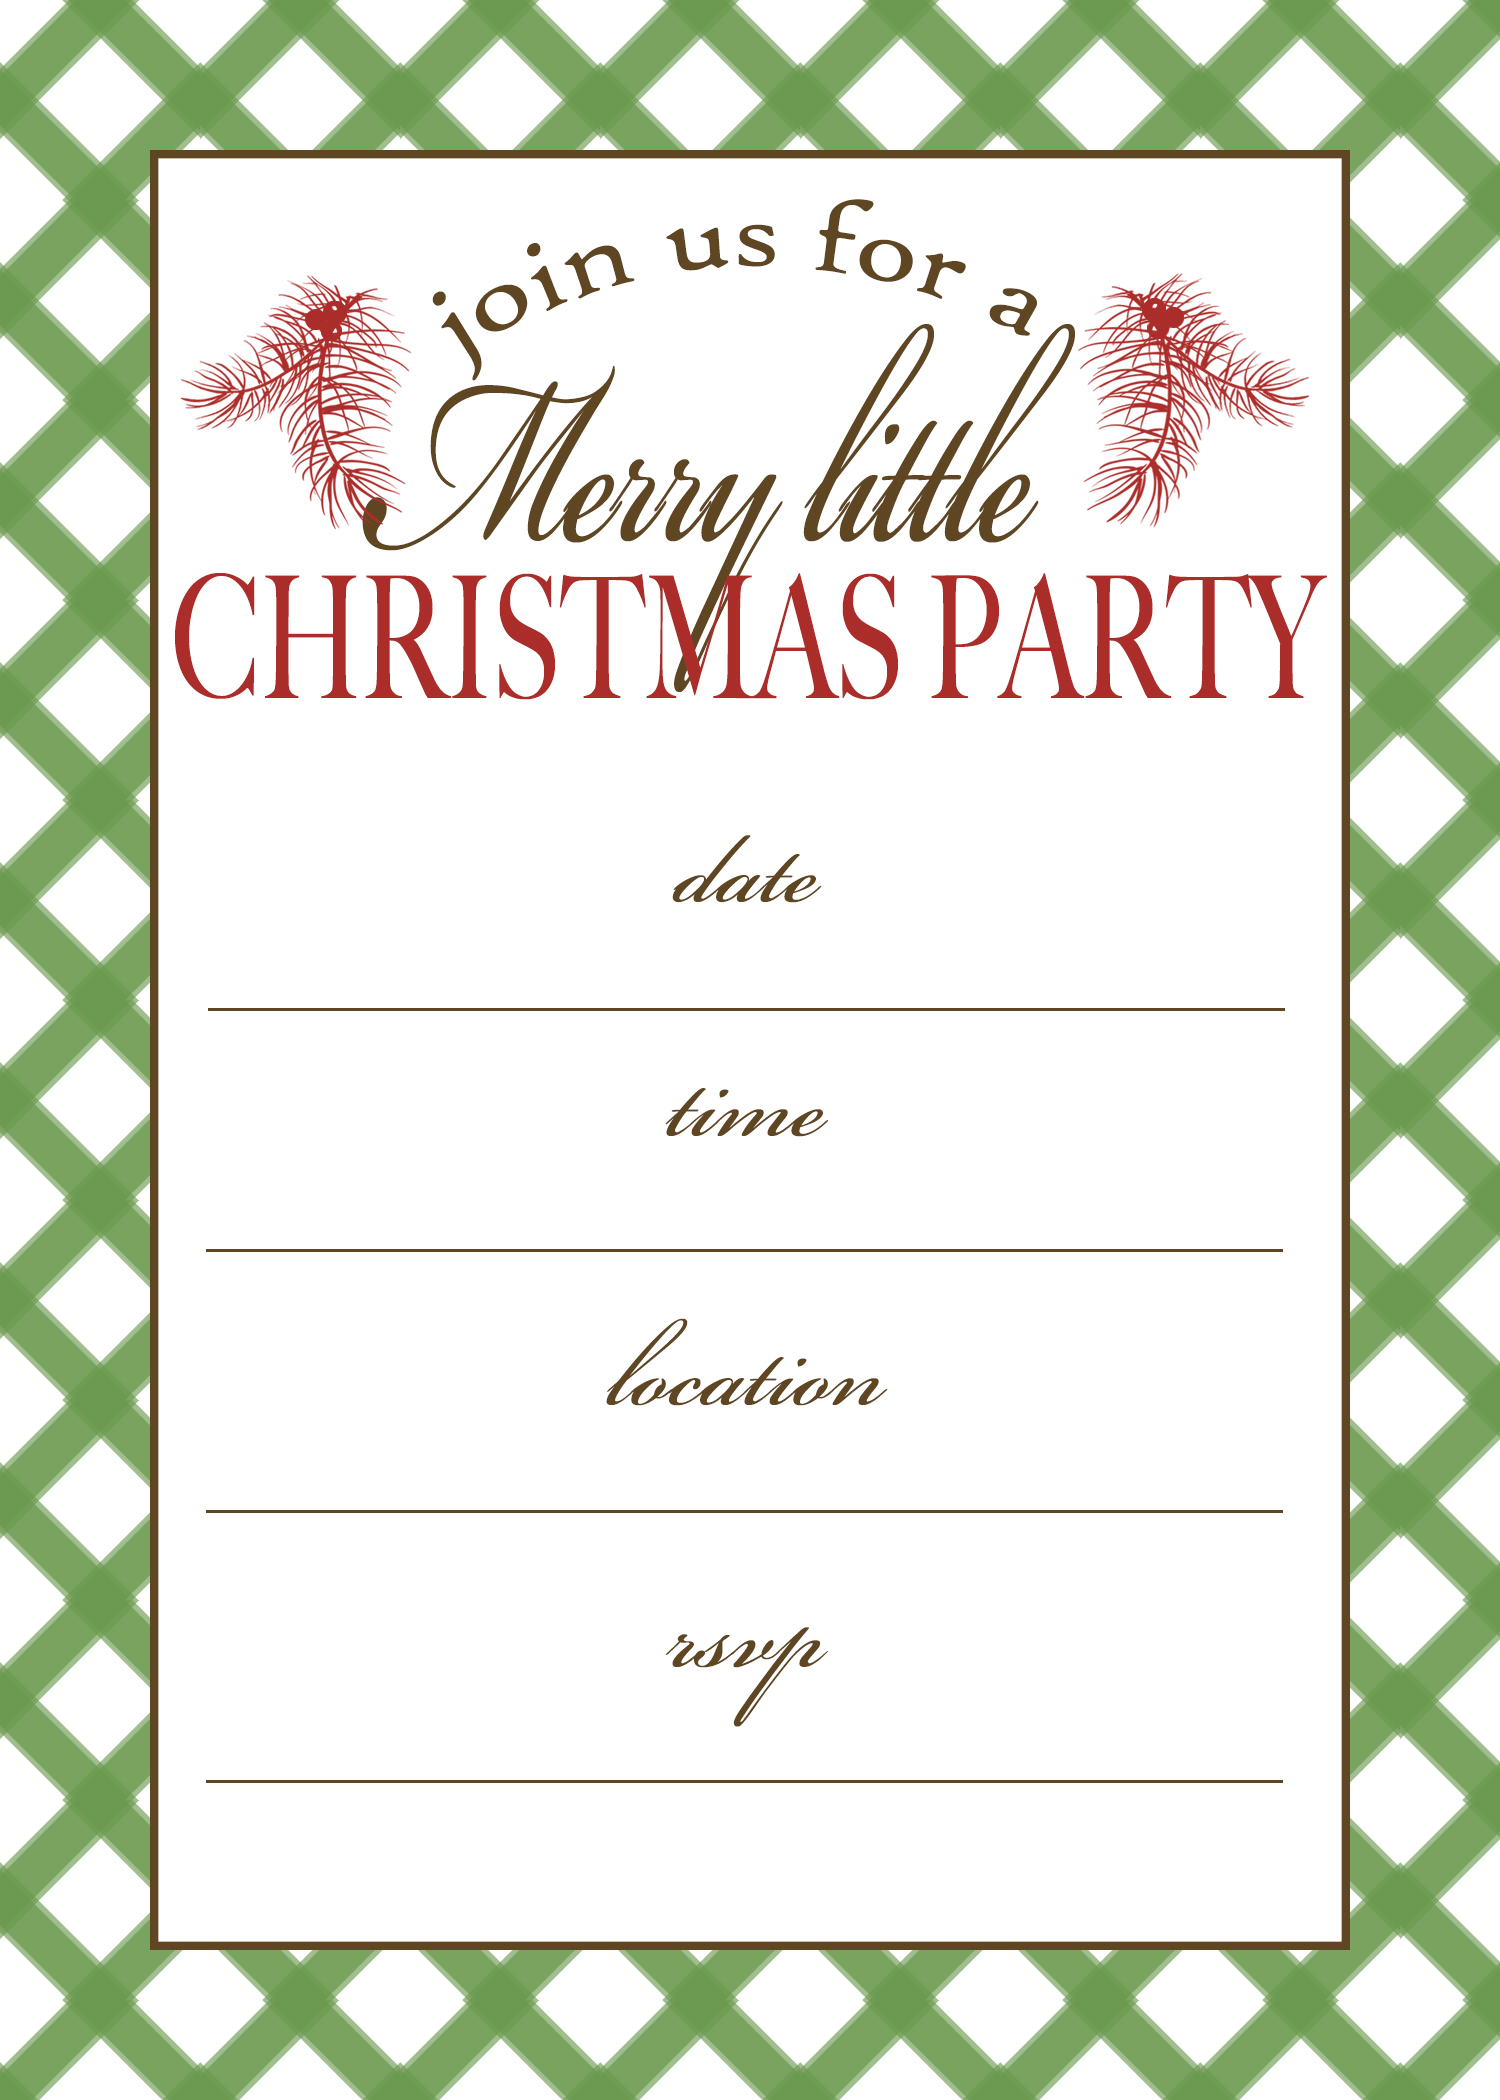 doc invitation forms create invitations from google printable christmas party invitations templates invitation forms